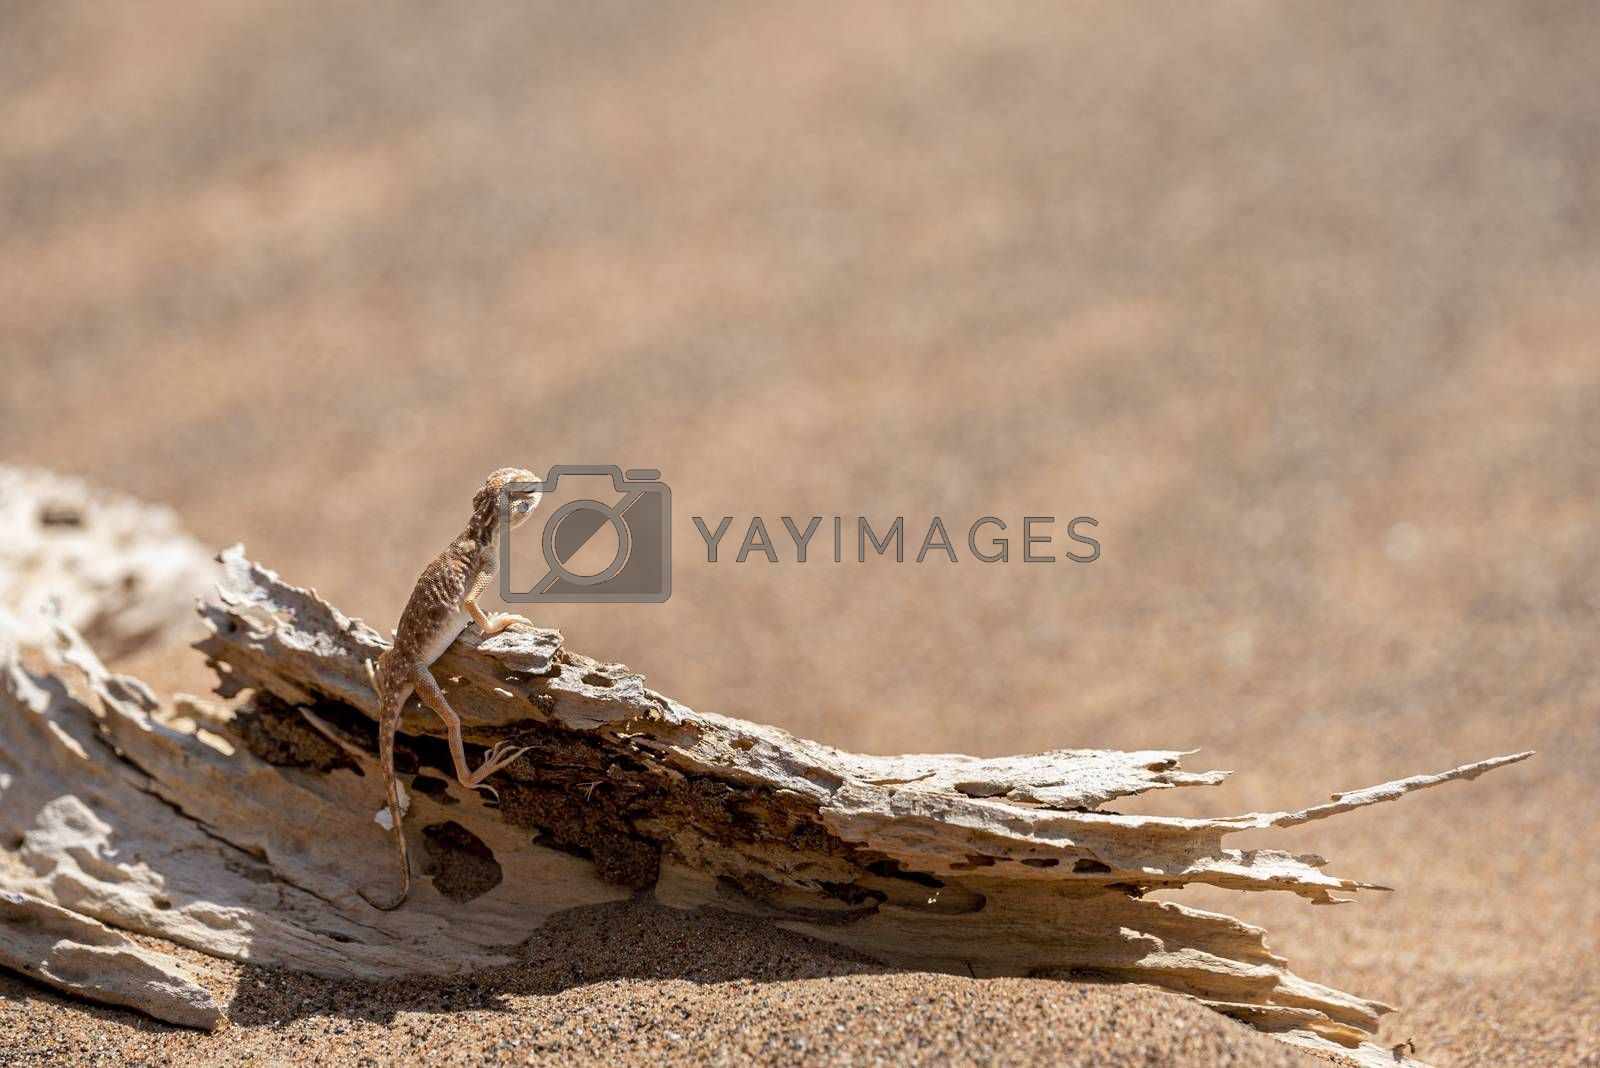 Arabian toad-headed agama (Phrynocephalus arabicus) in the Desert, standing on a dead trunk with copy space, Sharjah, United Arab Emirates (UAE), Arabian Peninsula, Middle East